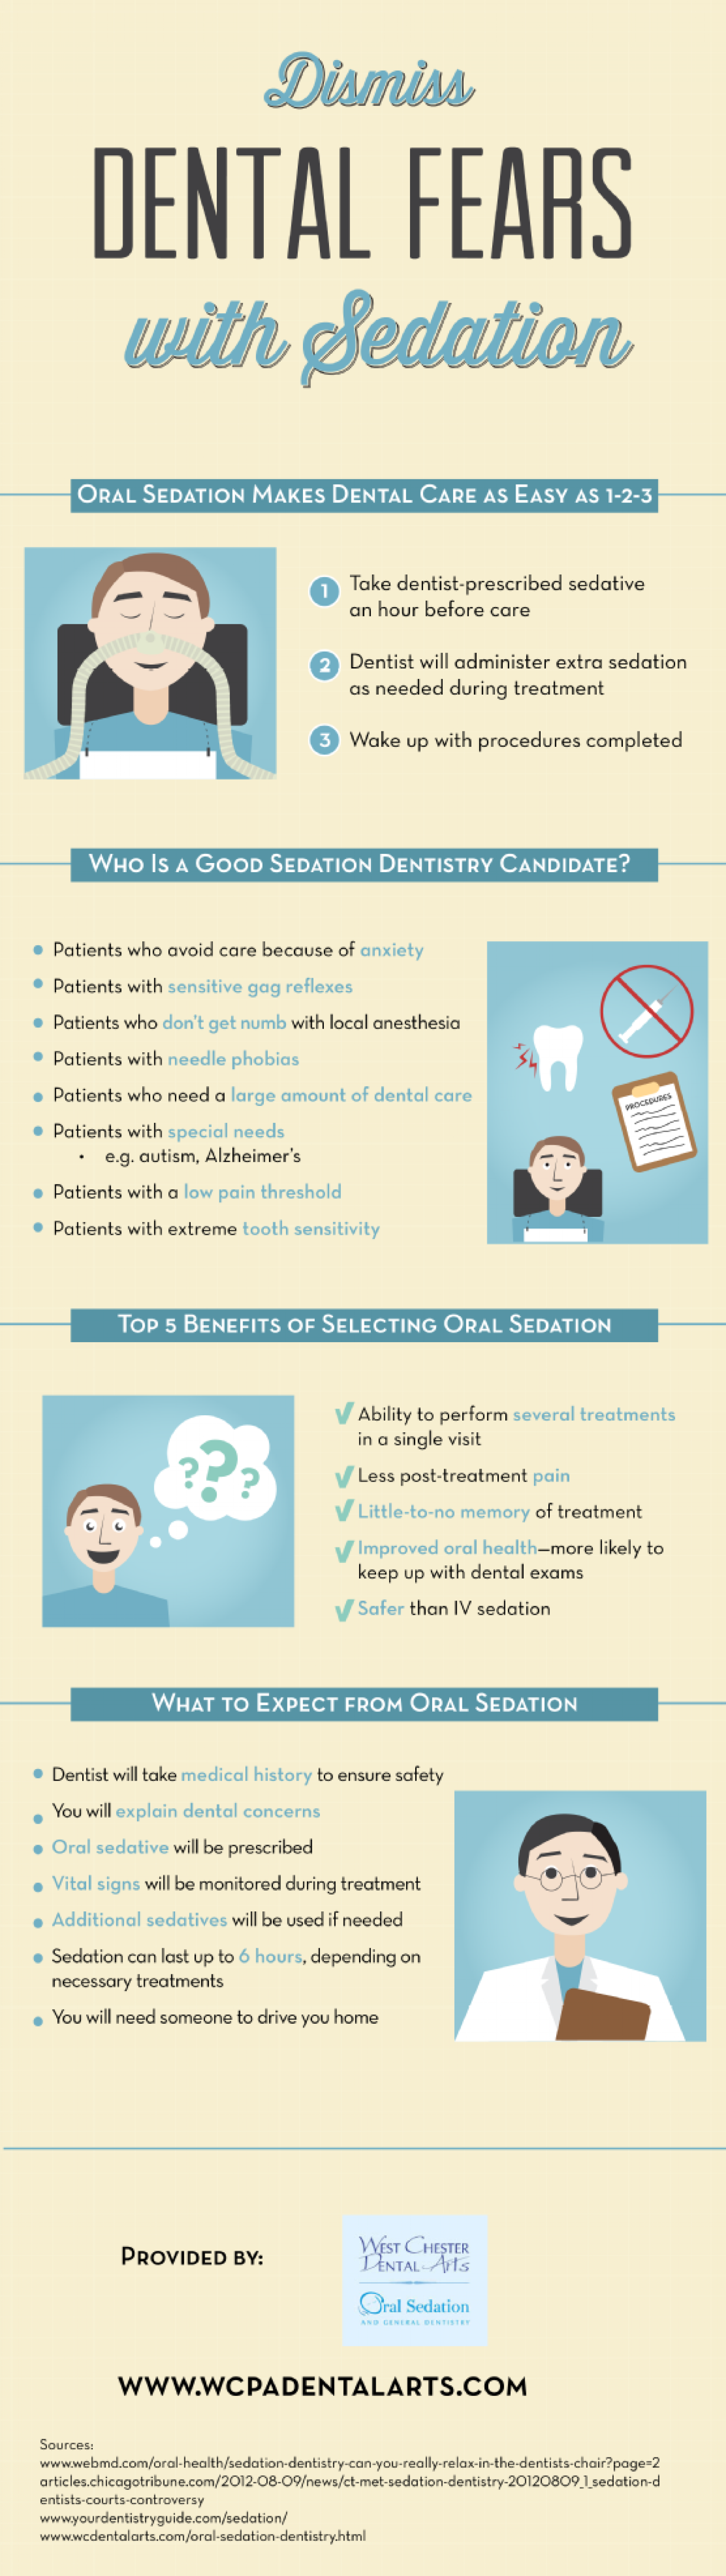 Dismiss Dental Fears with Sedation Infographic